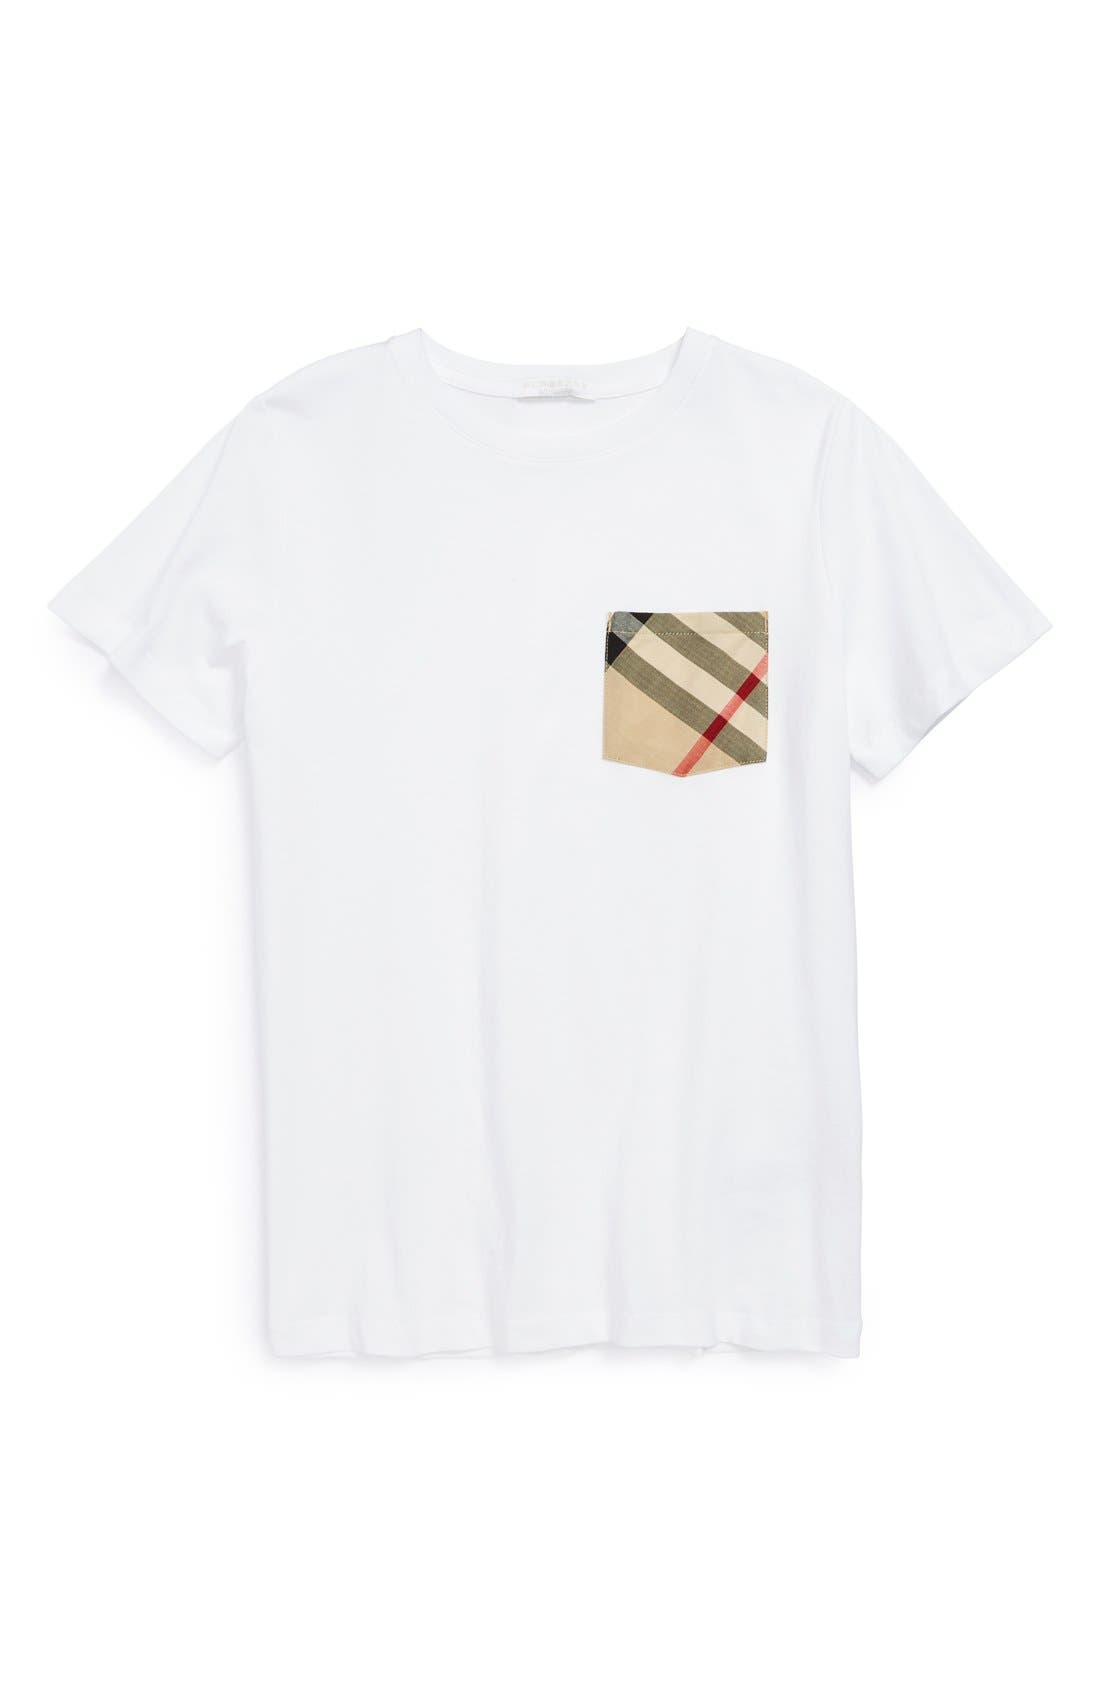 Main Image - Burberry Check Print Chest Pocket T-Shirt (Little Boys & Big Boys)